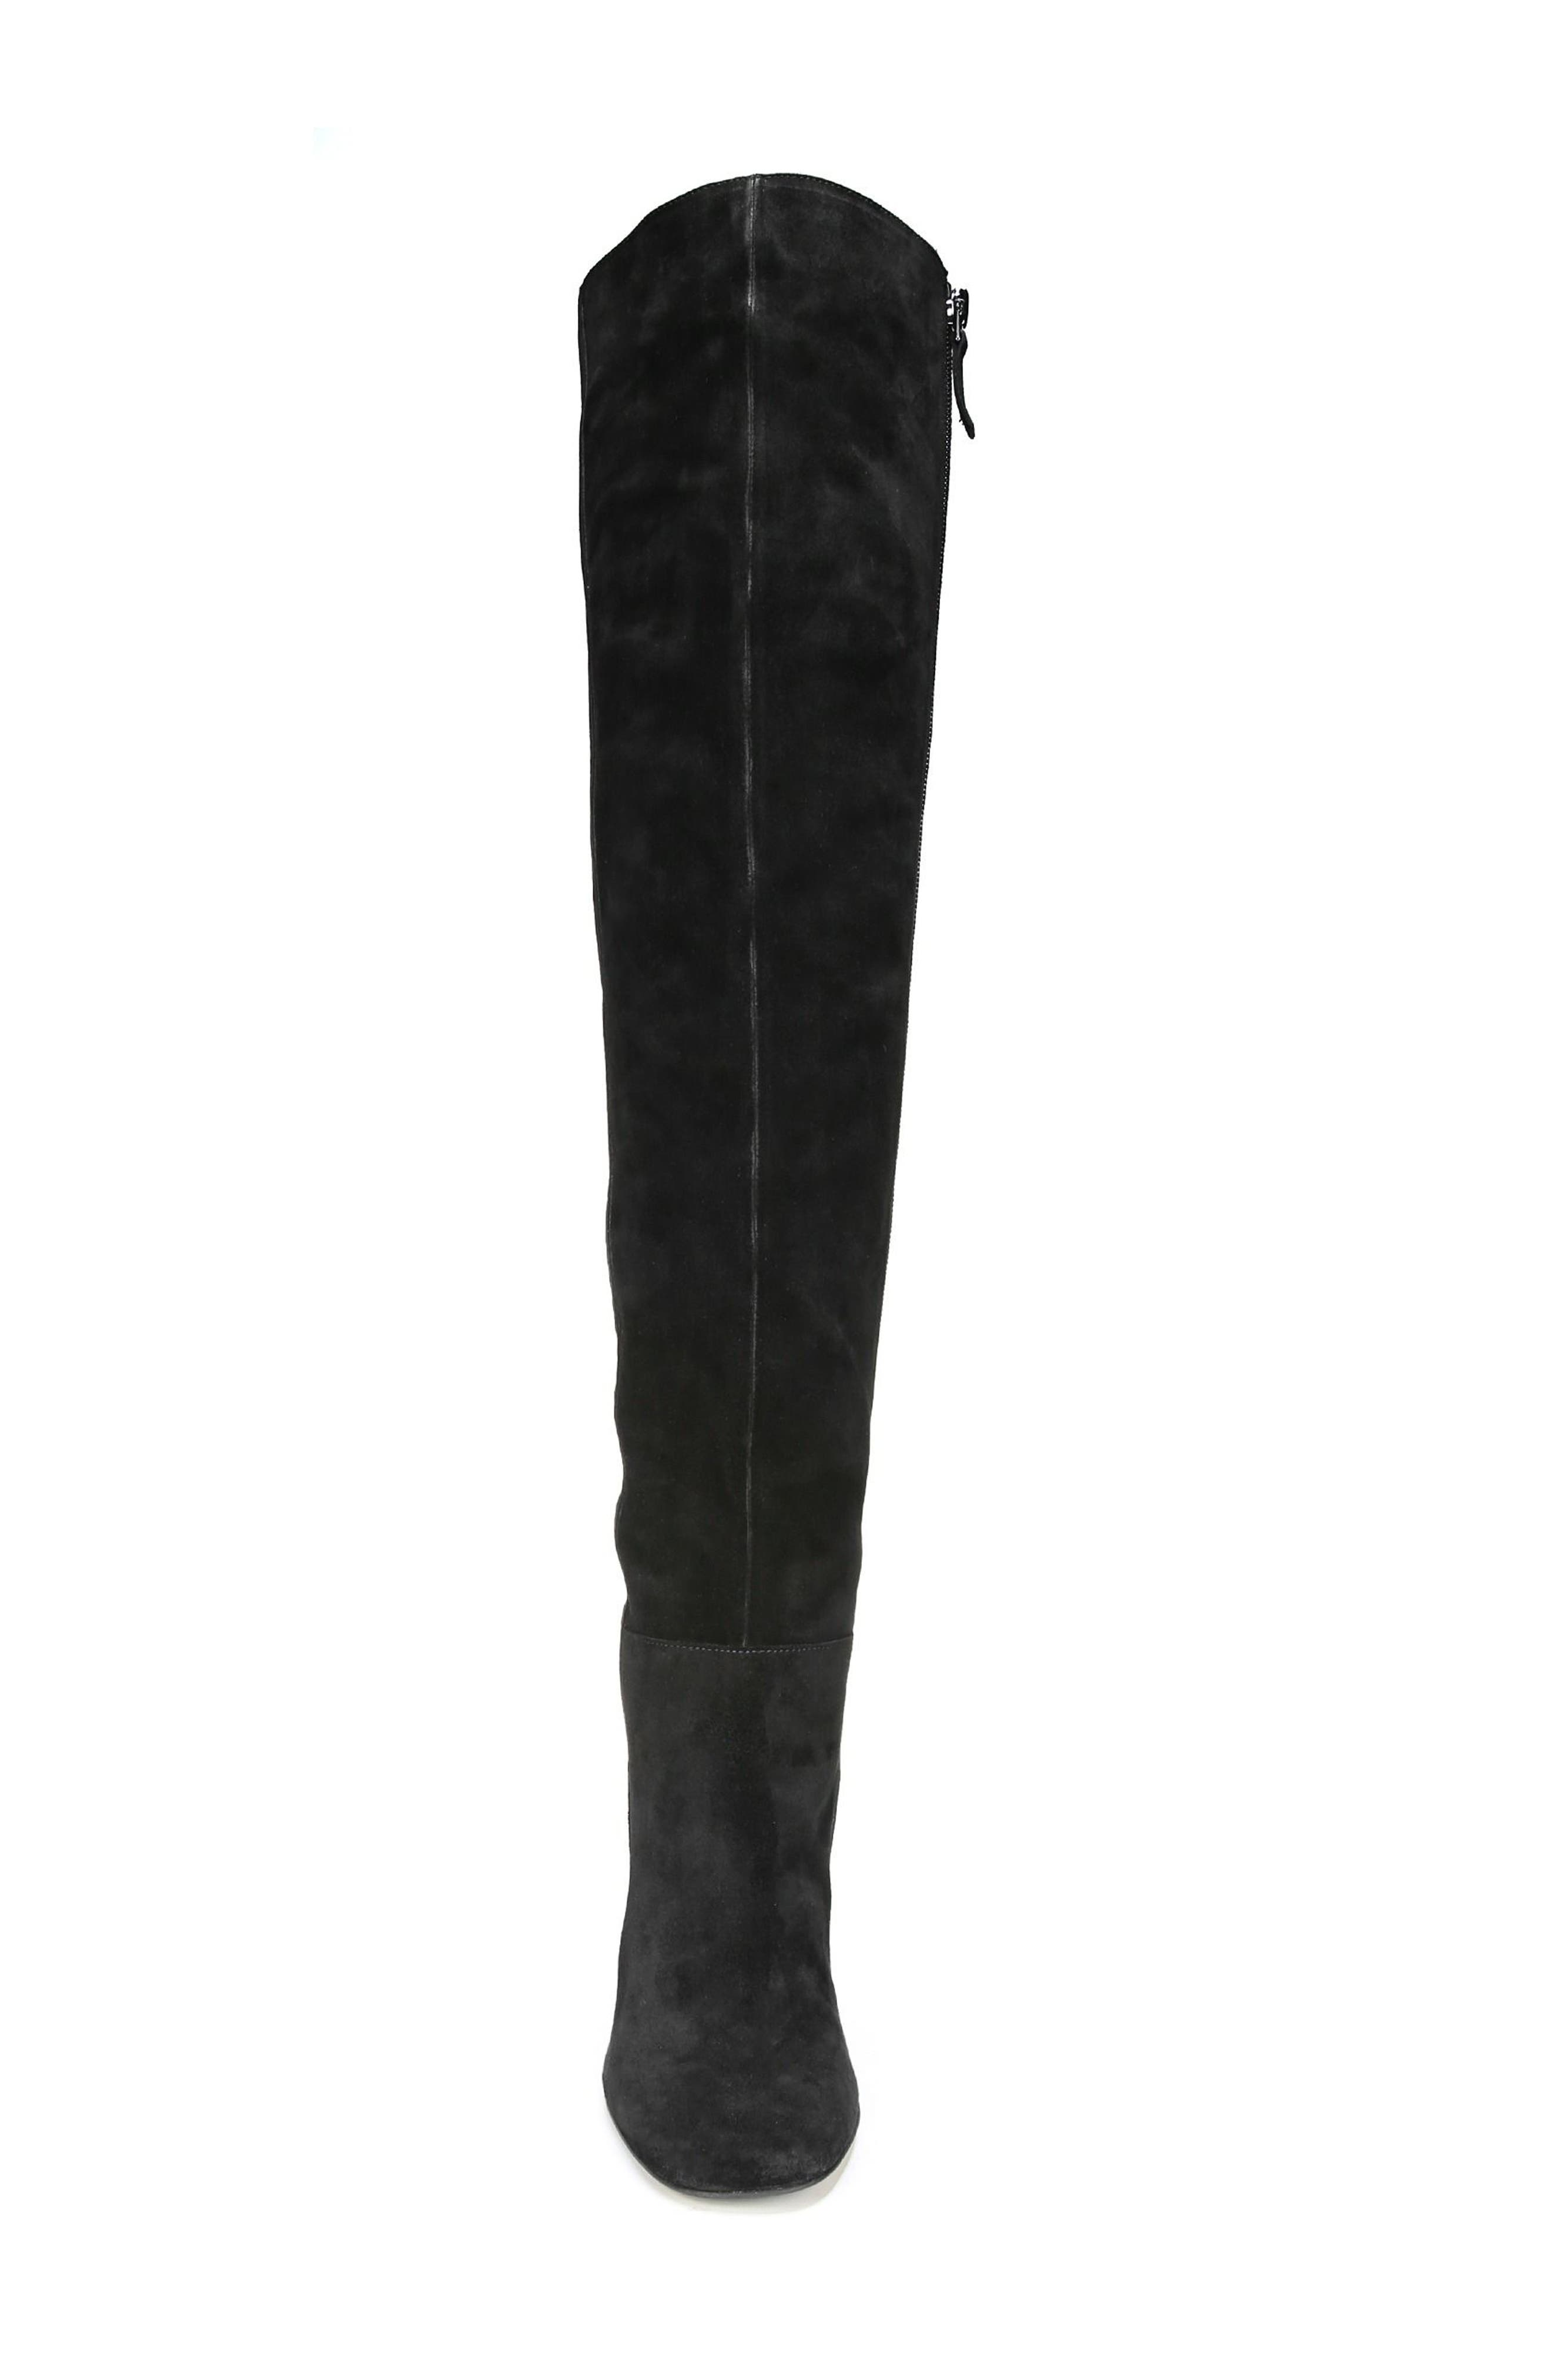 Laurel Over the Knee Boot,                             Alternate thumbnail 4, color,                             Black Suede